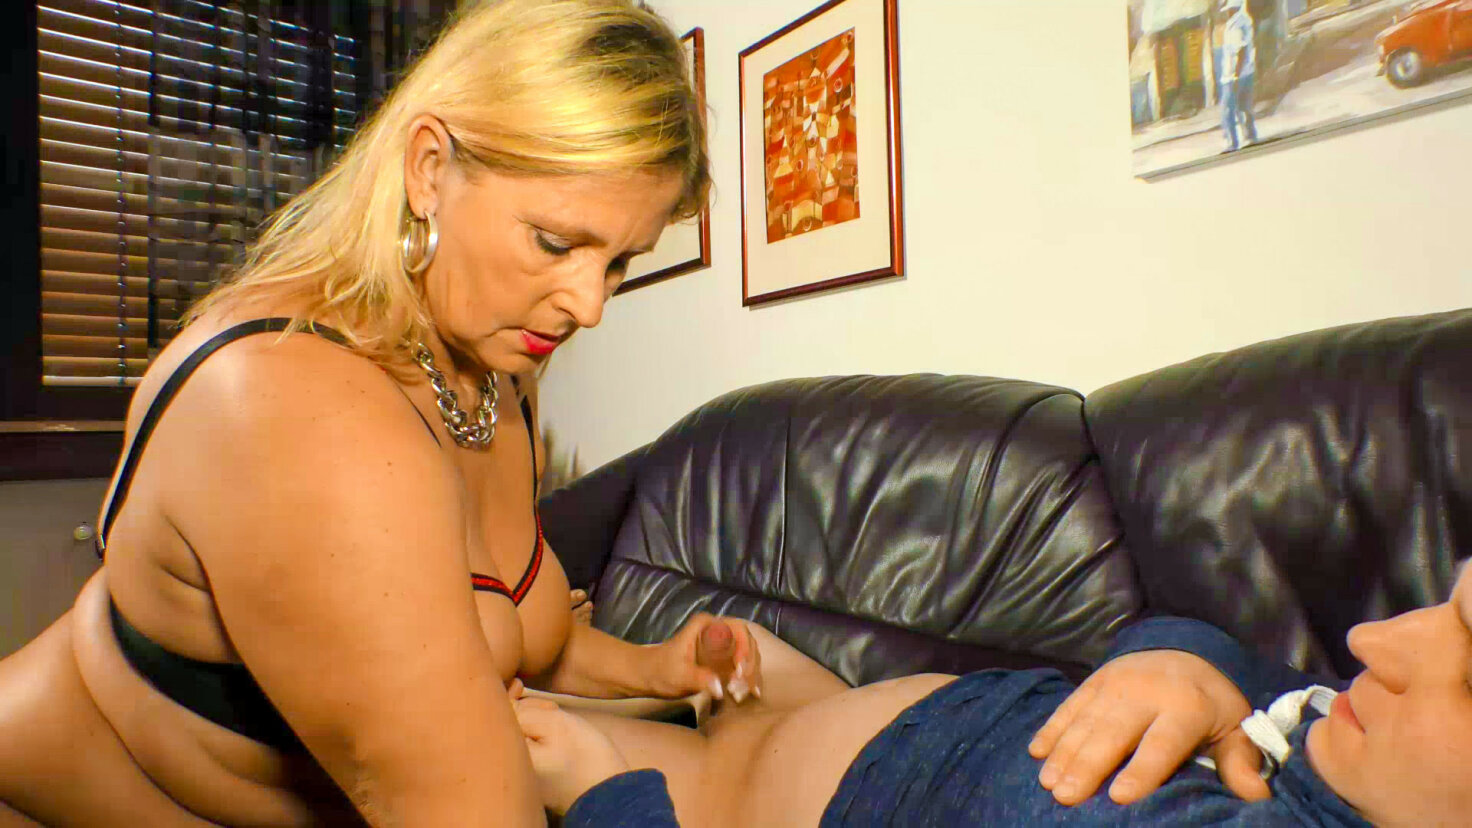 German blonde granny Kiki R. loves the taste of cum in hot hard fuck